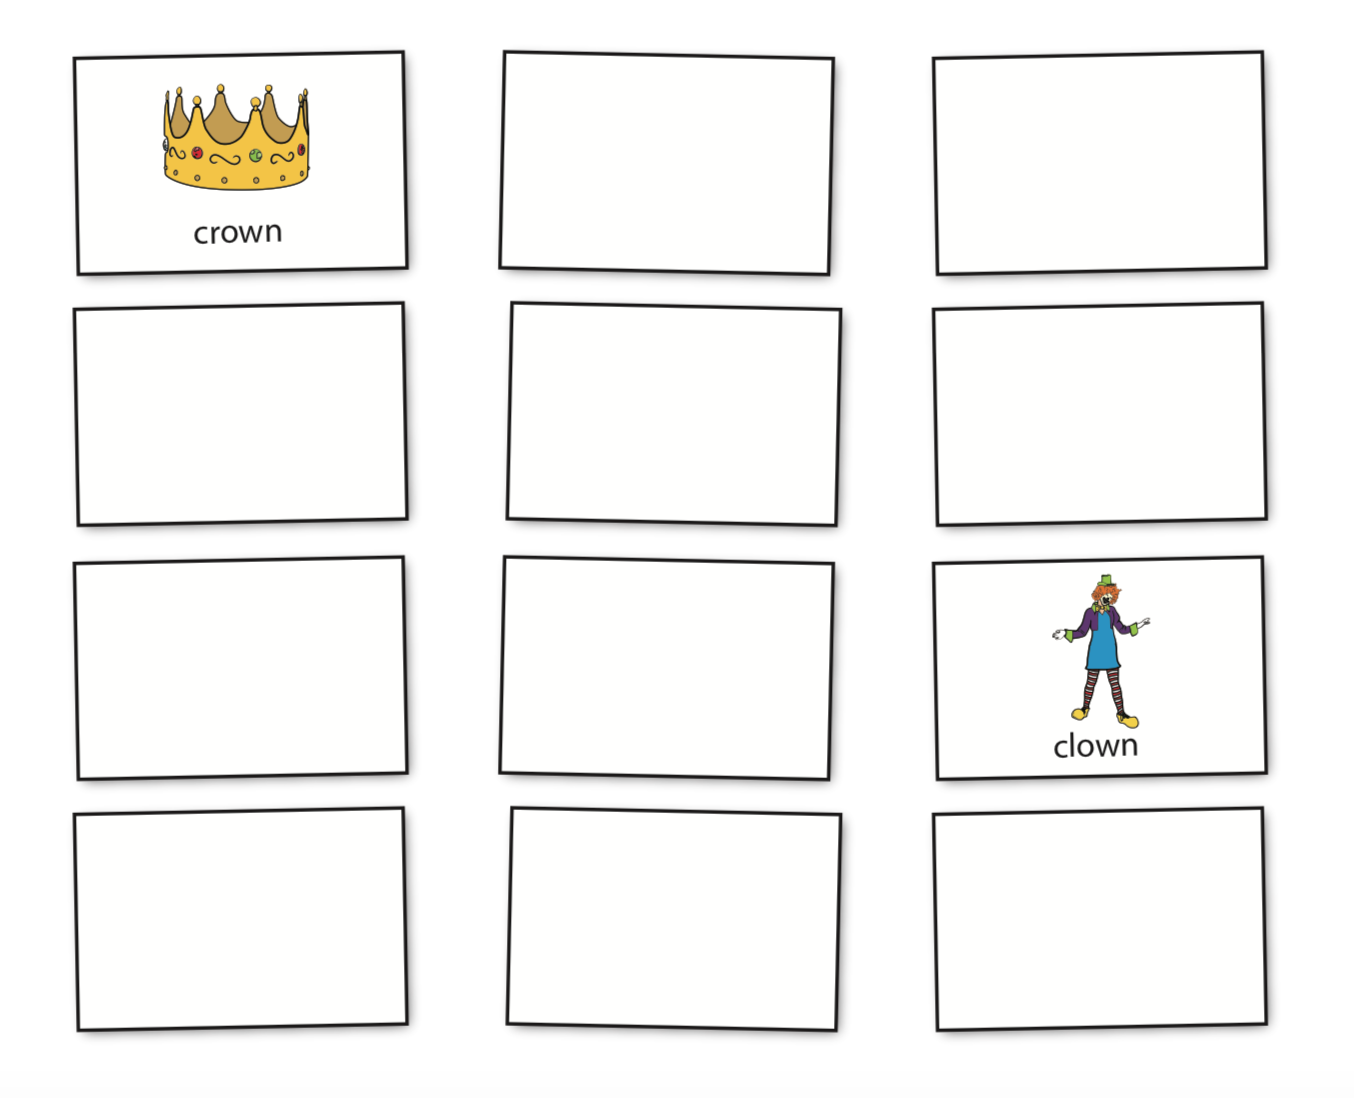 Rhyme Memory Match Free, downloadable cards for